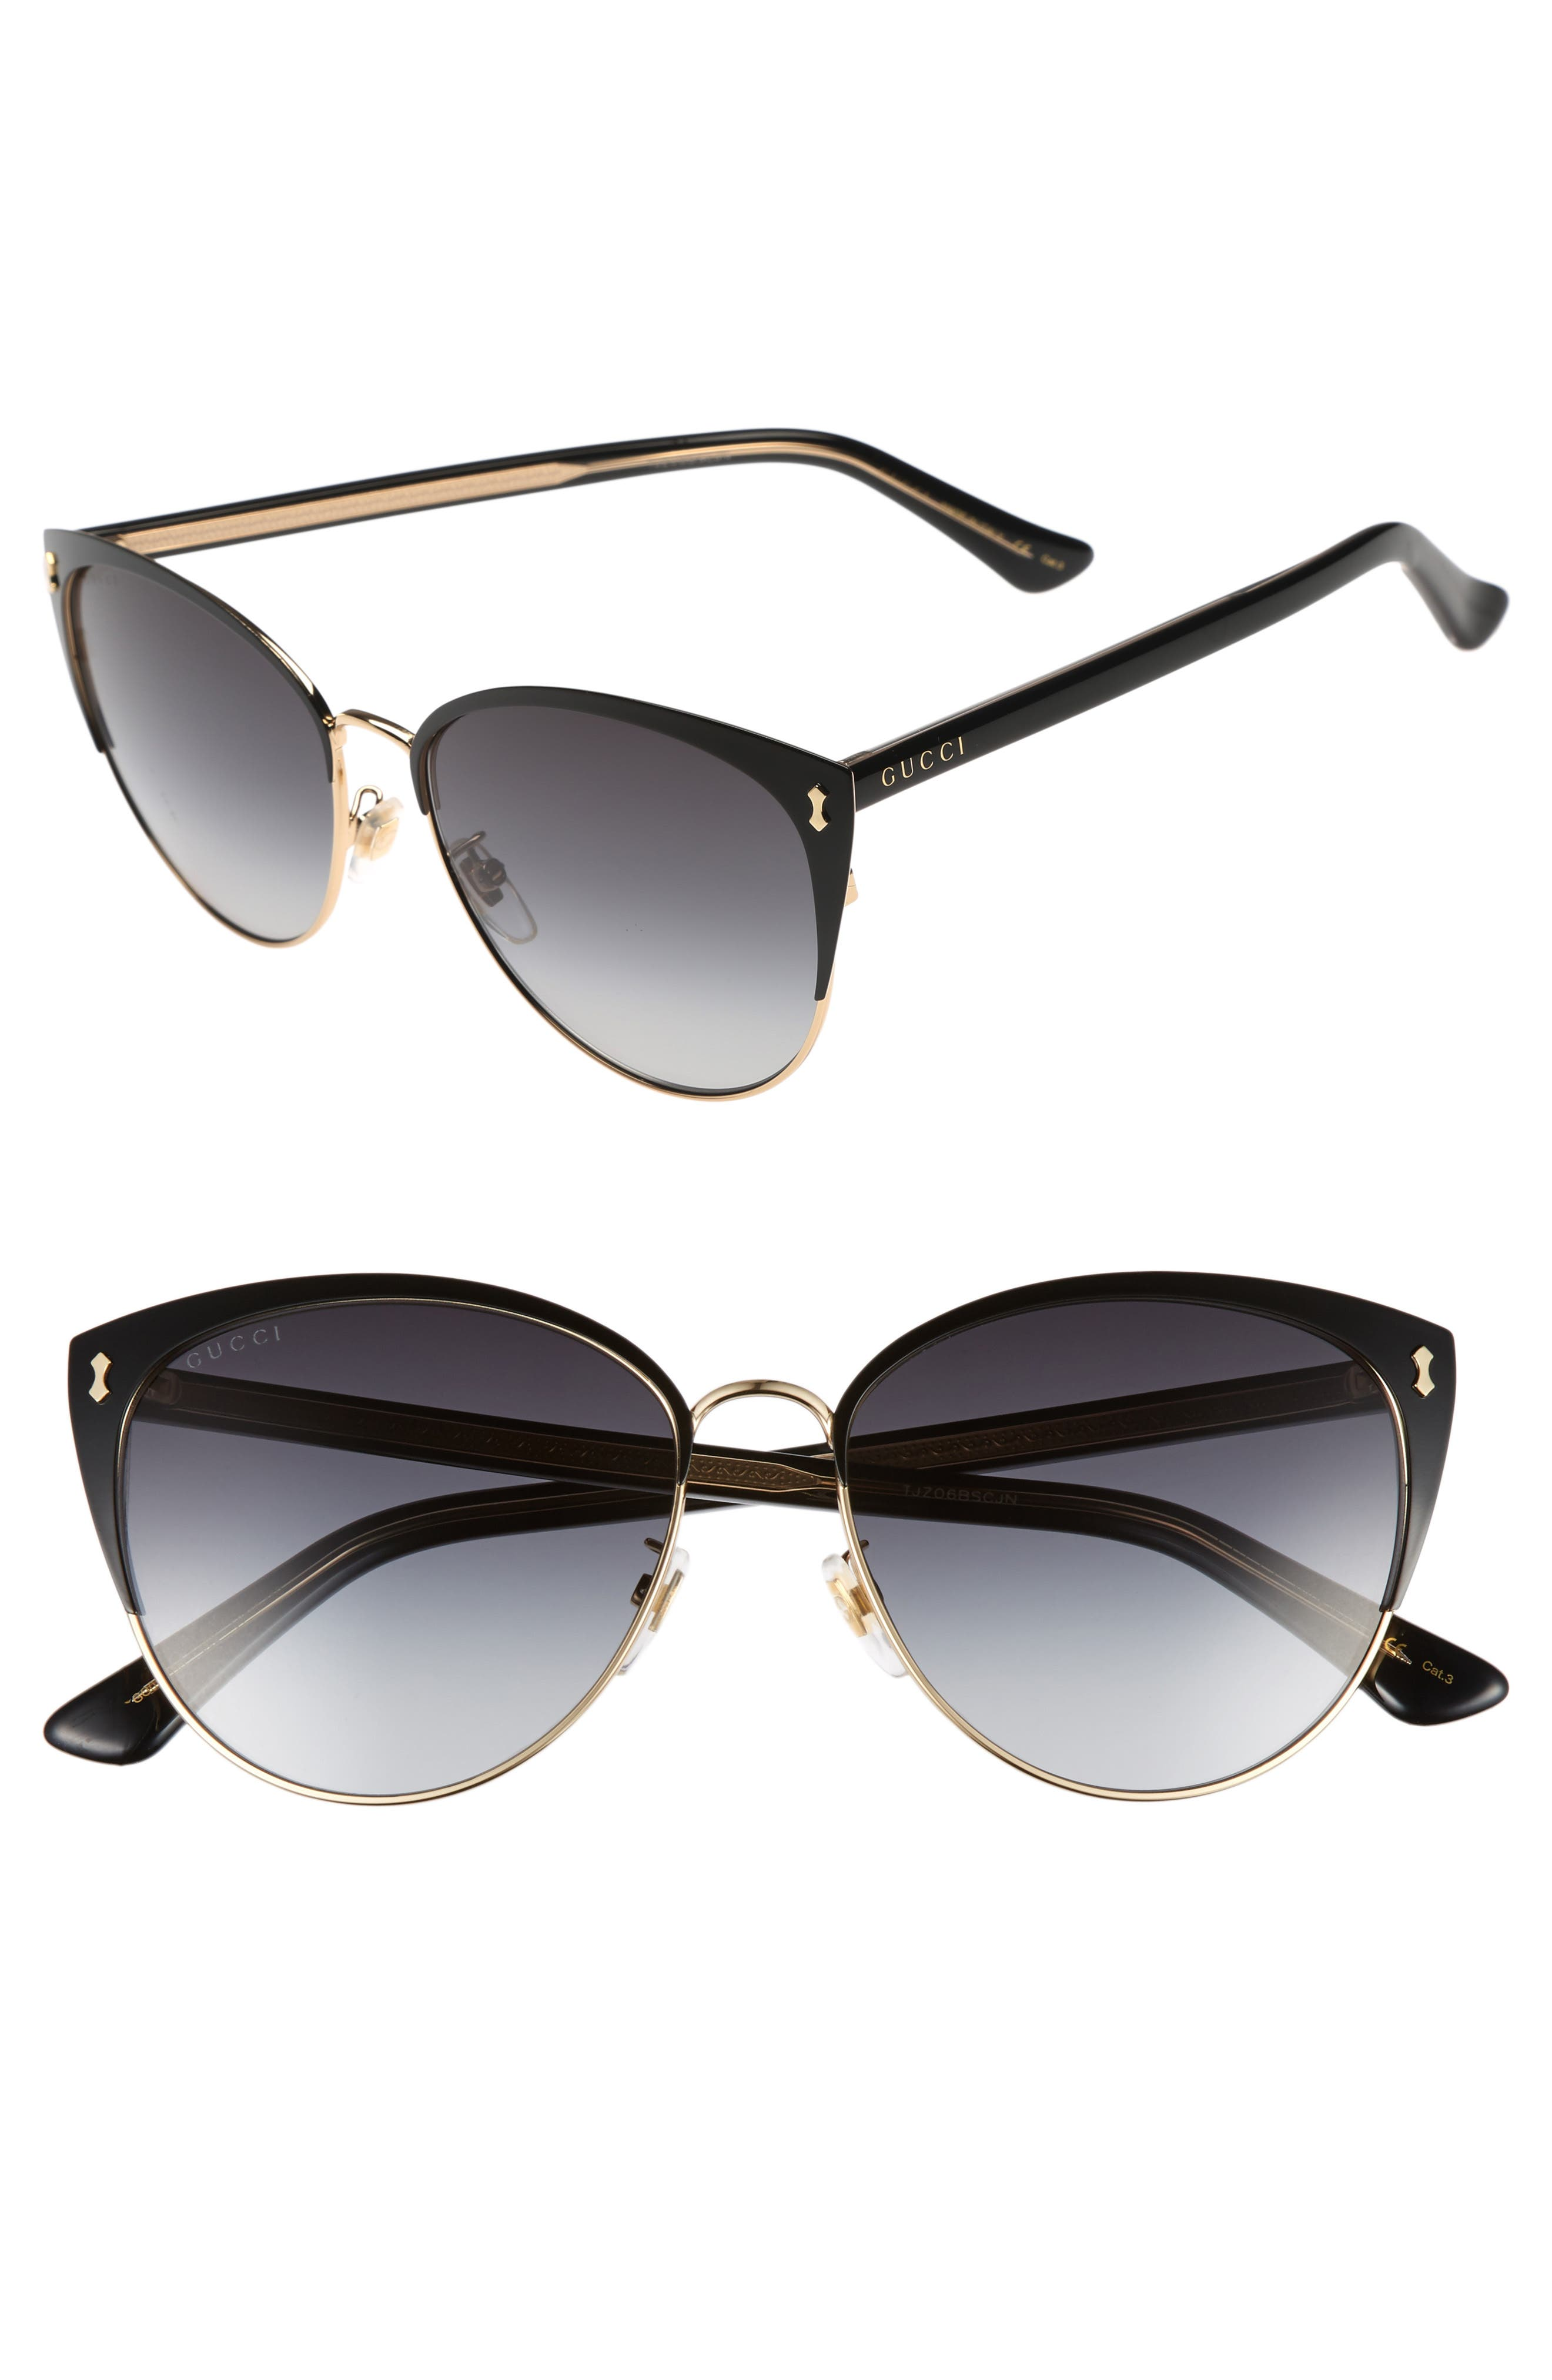 Gucci 5m Cat Eye Sunglasses - Black